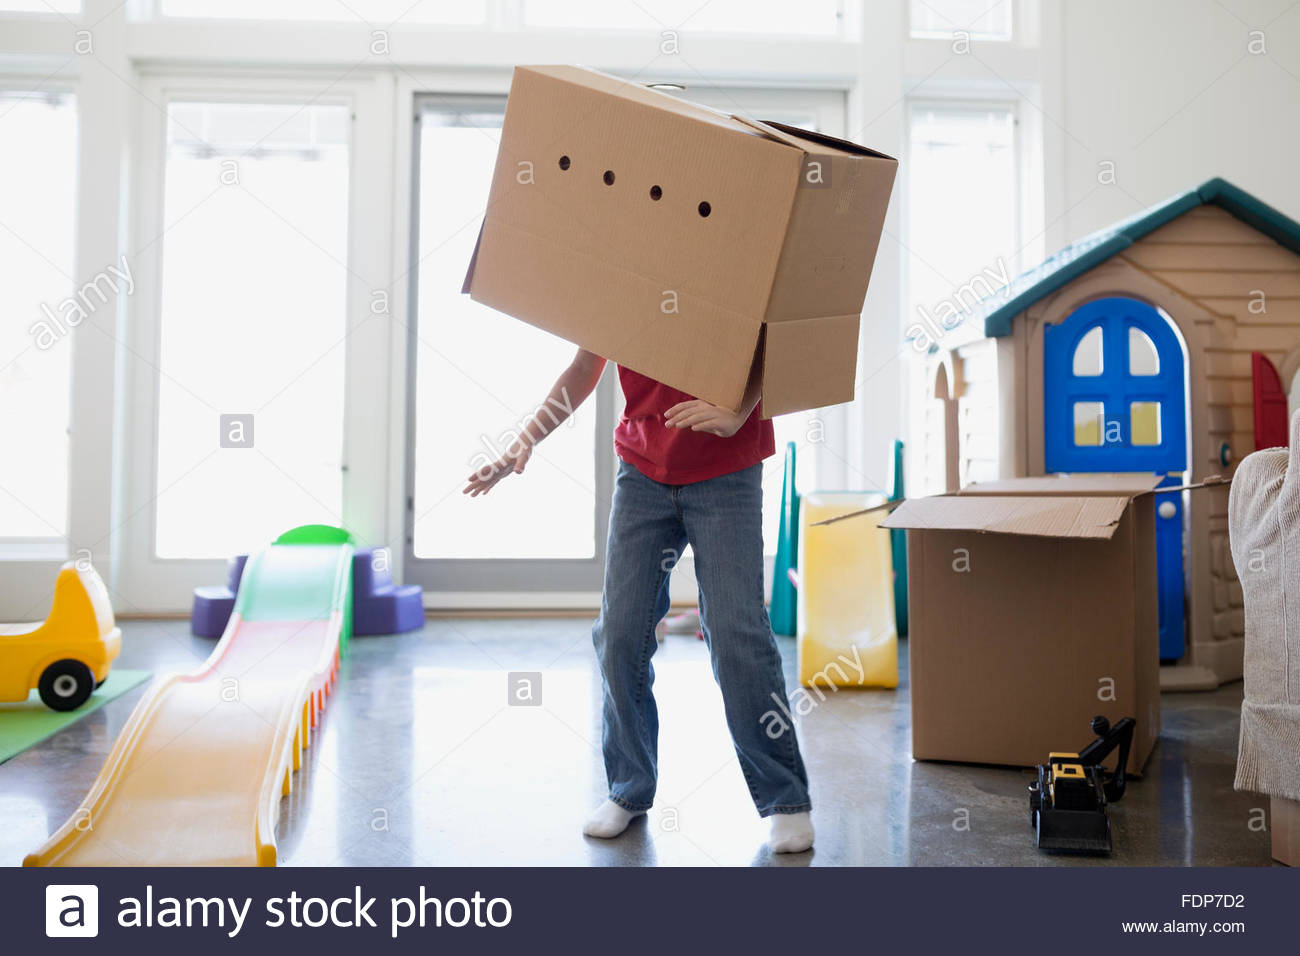 Playful boy dancing with cardboard box on head - Stock Image